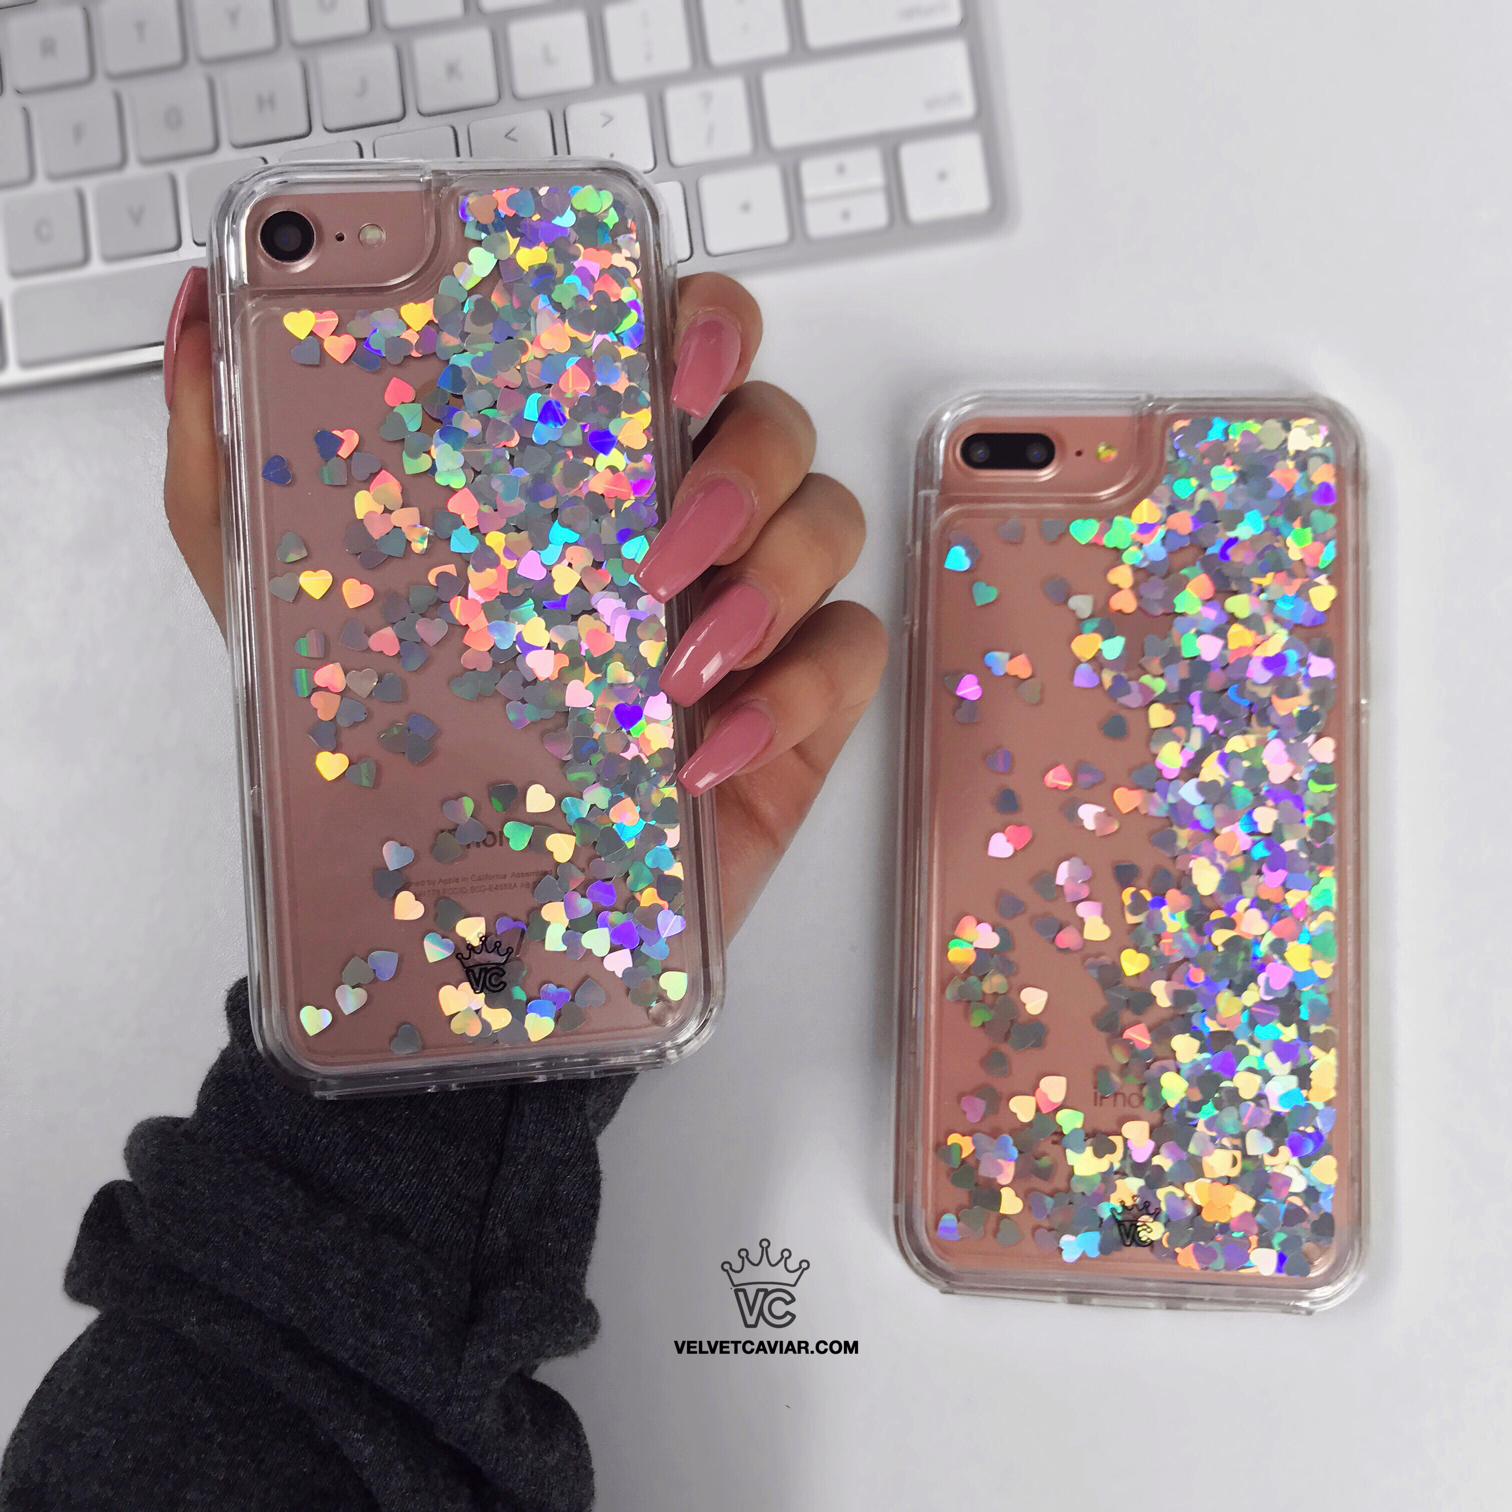 Bring on cascades of glamour and fabulousness with our holo hearts liquid glitter  case for the iPhone! Featuring a clear layer riddled with colorful ... 07342521cfb5